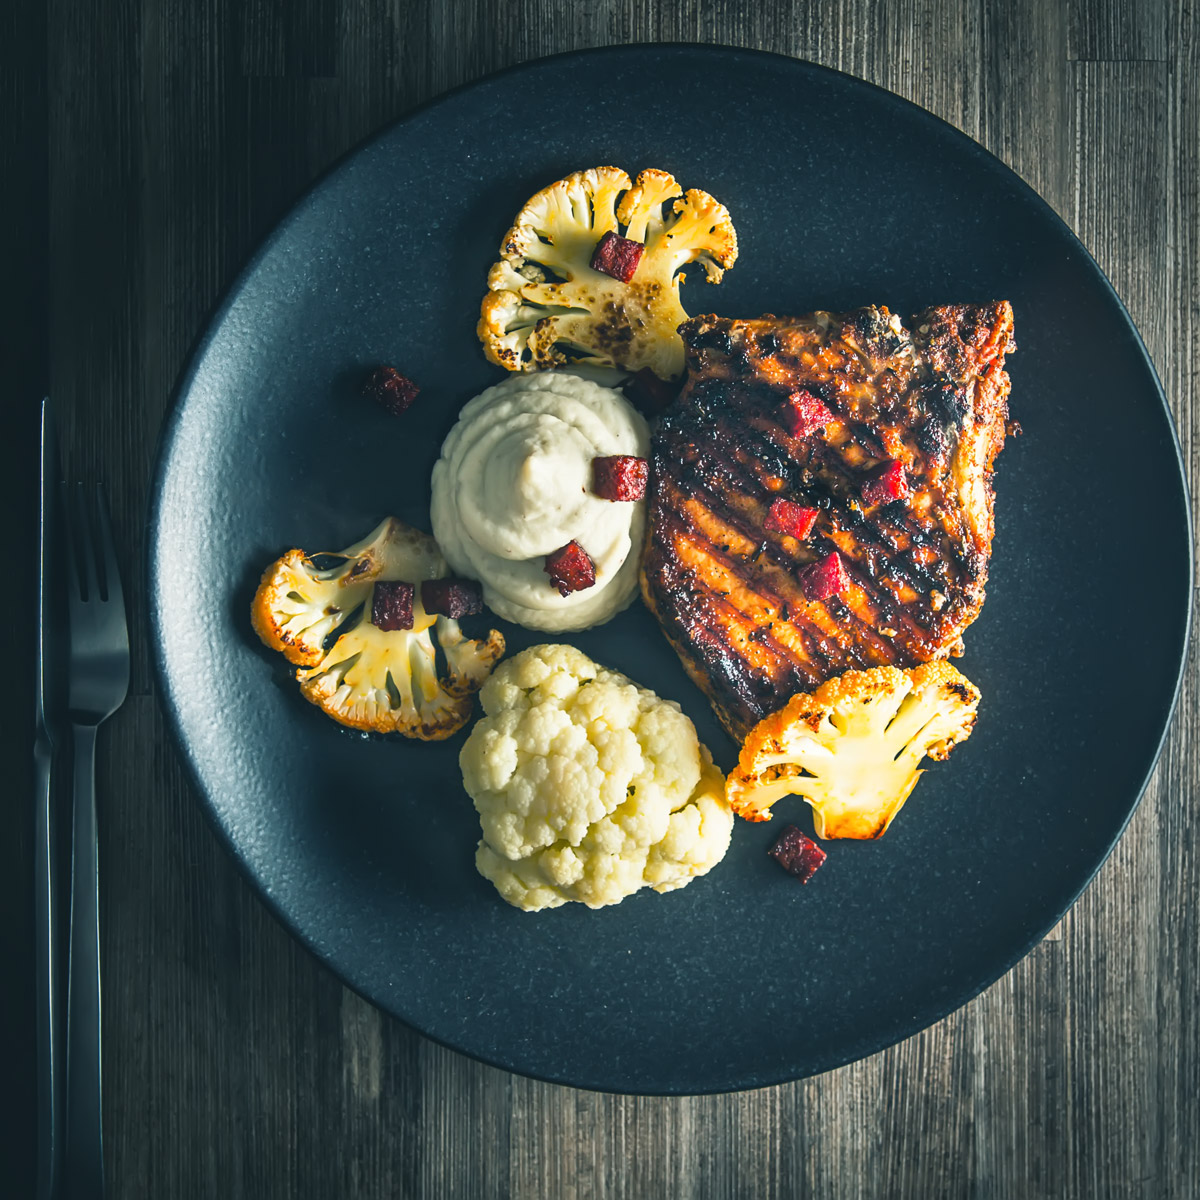 Spanish Pork Chops with Cauliflower